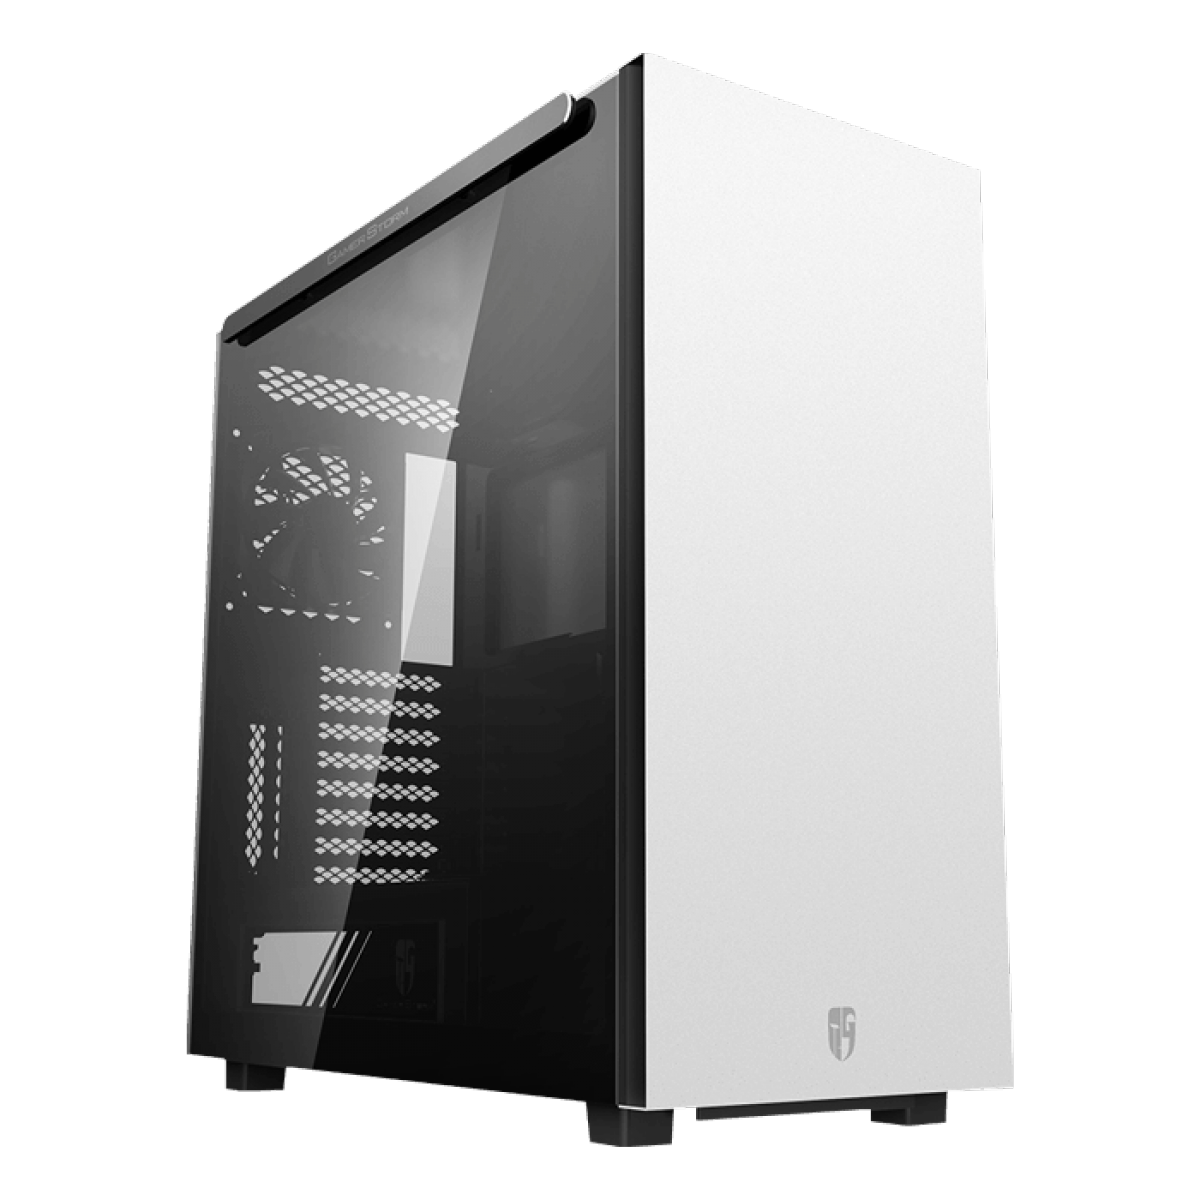 Gabinete Gamer DeepCool Macube 550, Full Tower, Vidro Temperado, White, Sem Fonte, Com 1 Fan, GS-ATX-MACUBE550-WHG0P